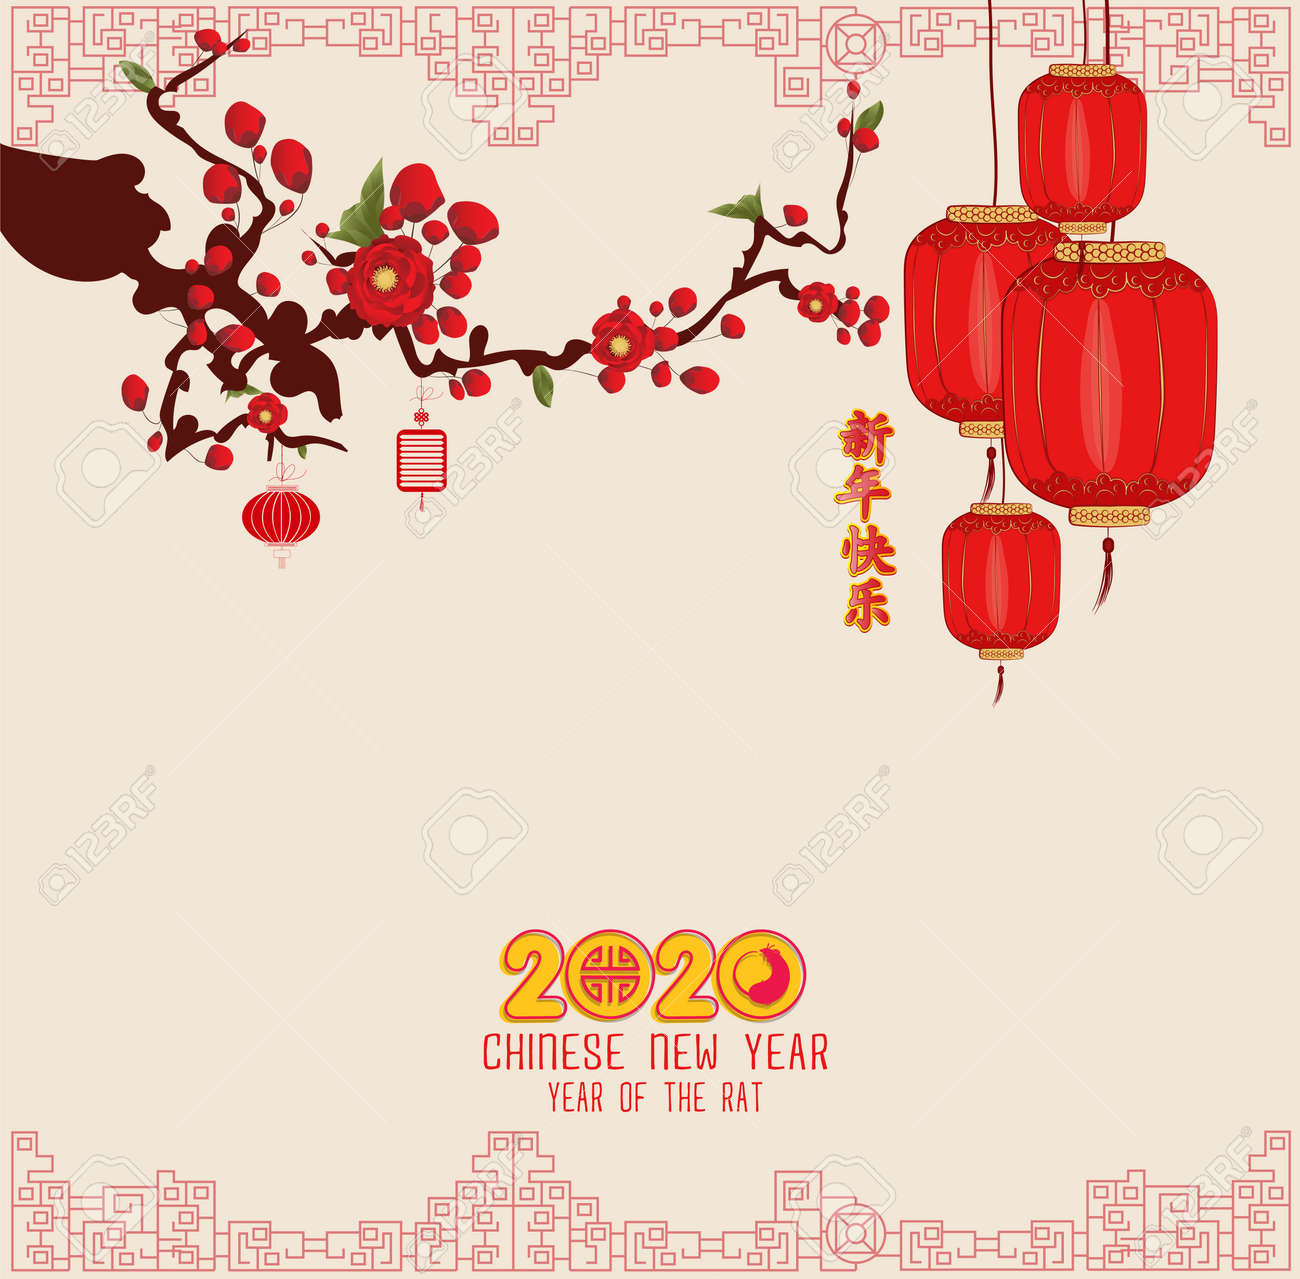 Cherry Festival 2020.Happy Chinese New Year 2020 Year Of The Rat Lantern And Cherry